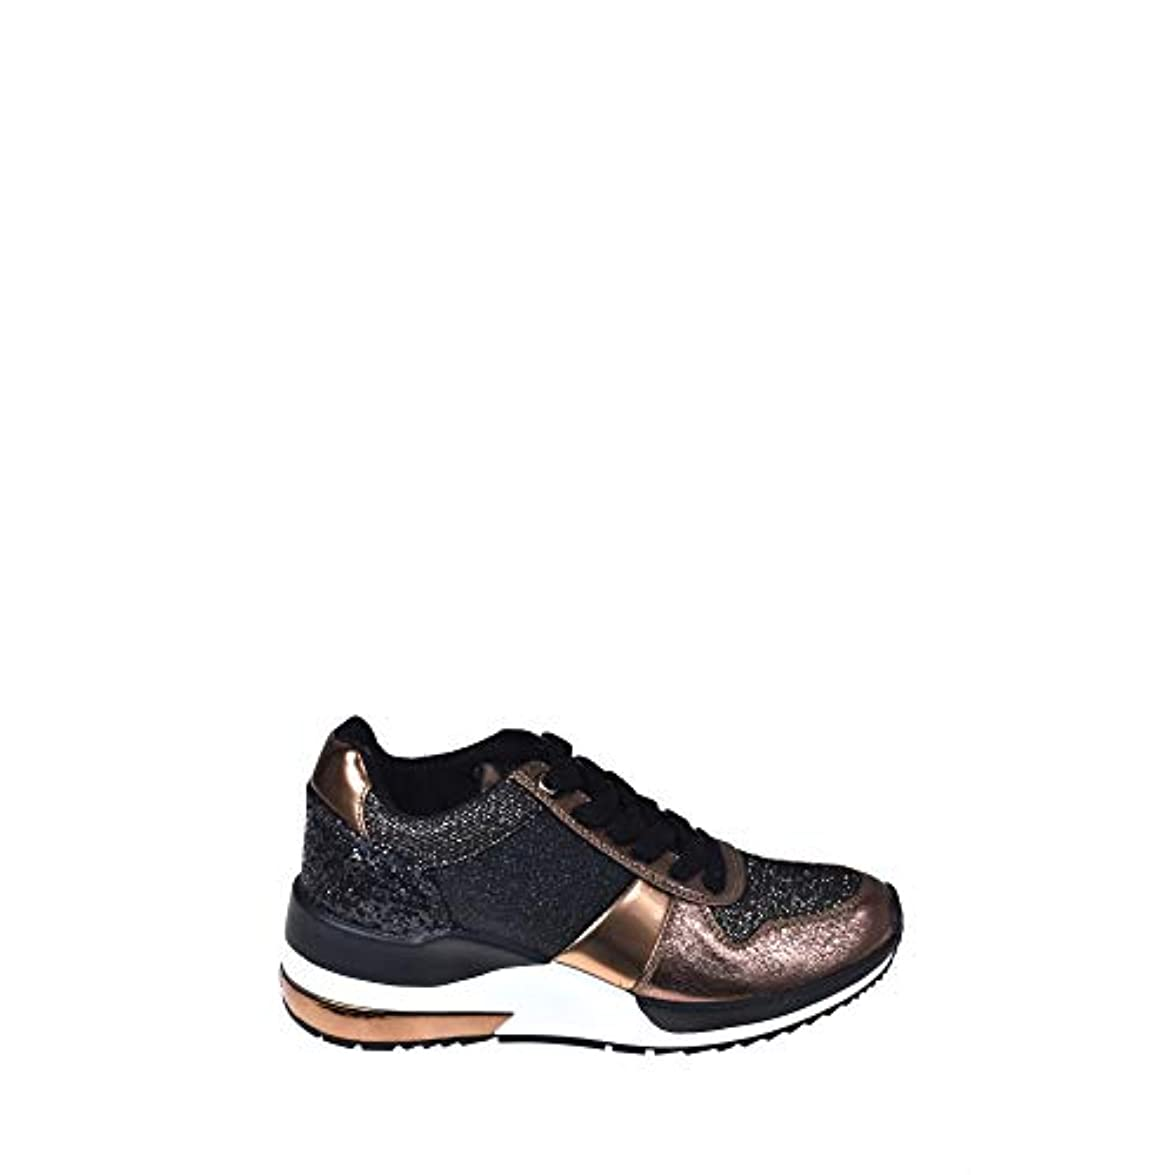 Guess Fljat4 Fam12 Sneakers Donna